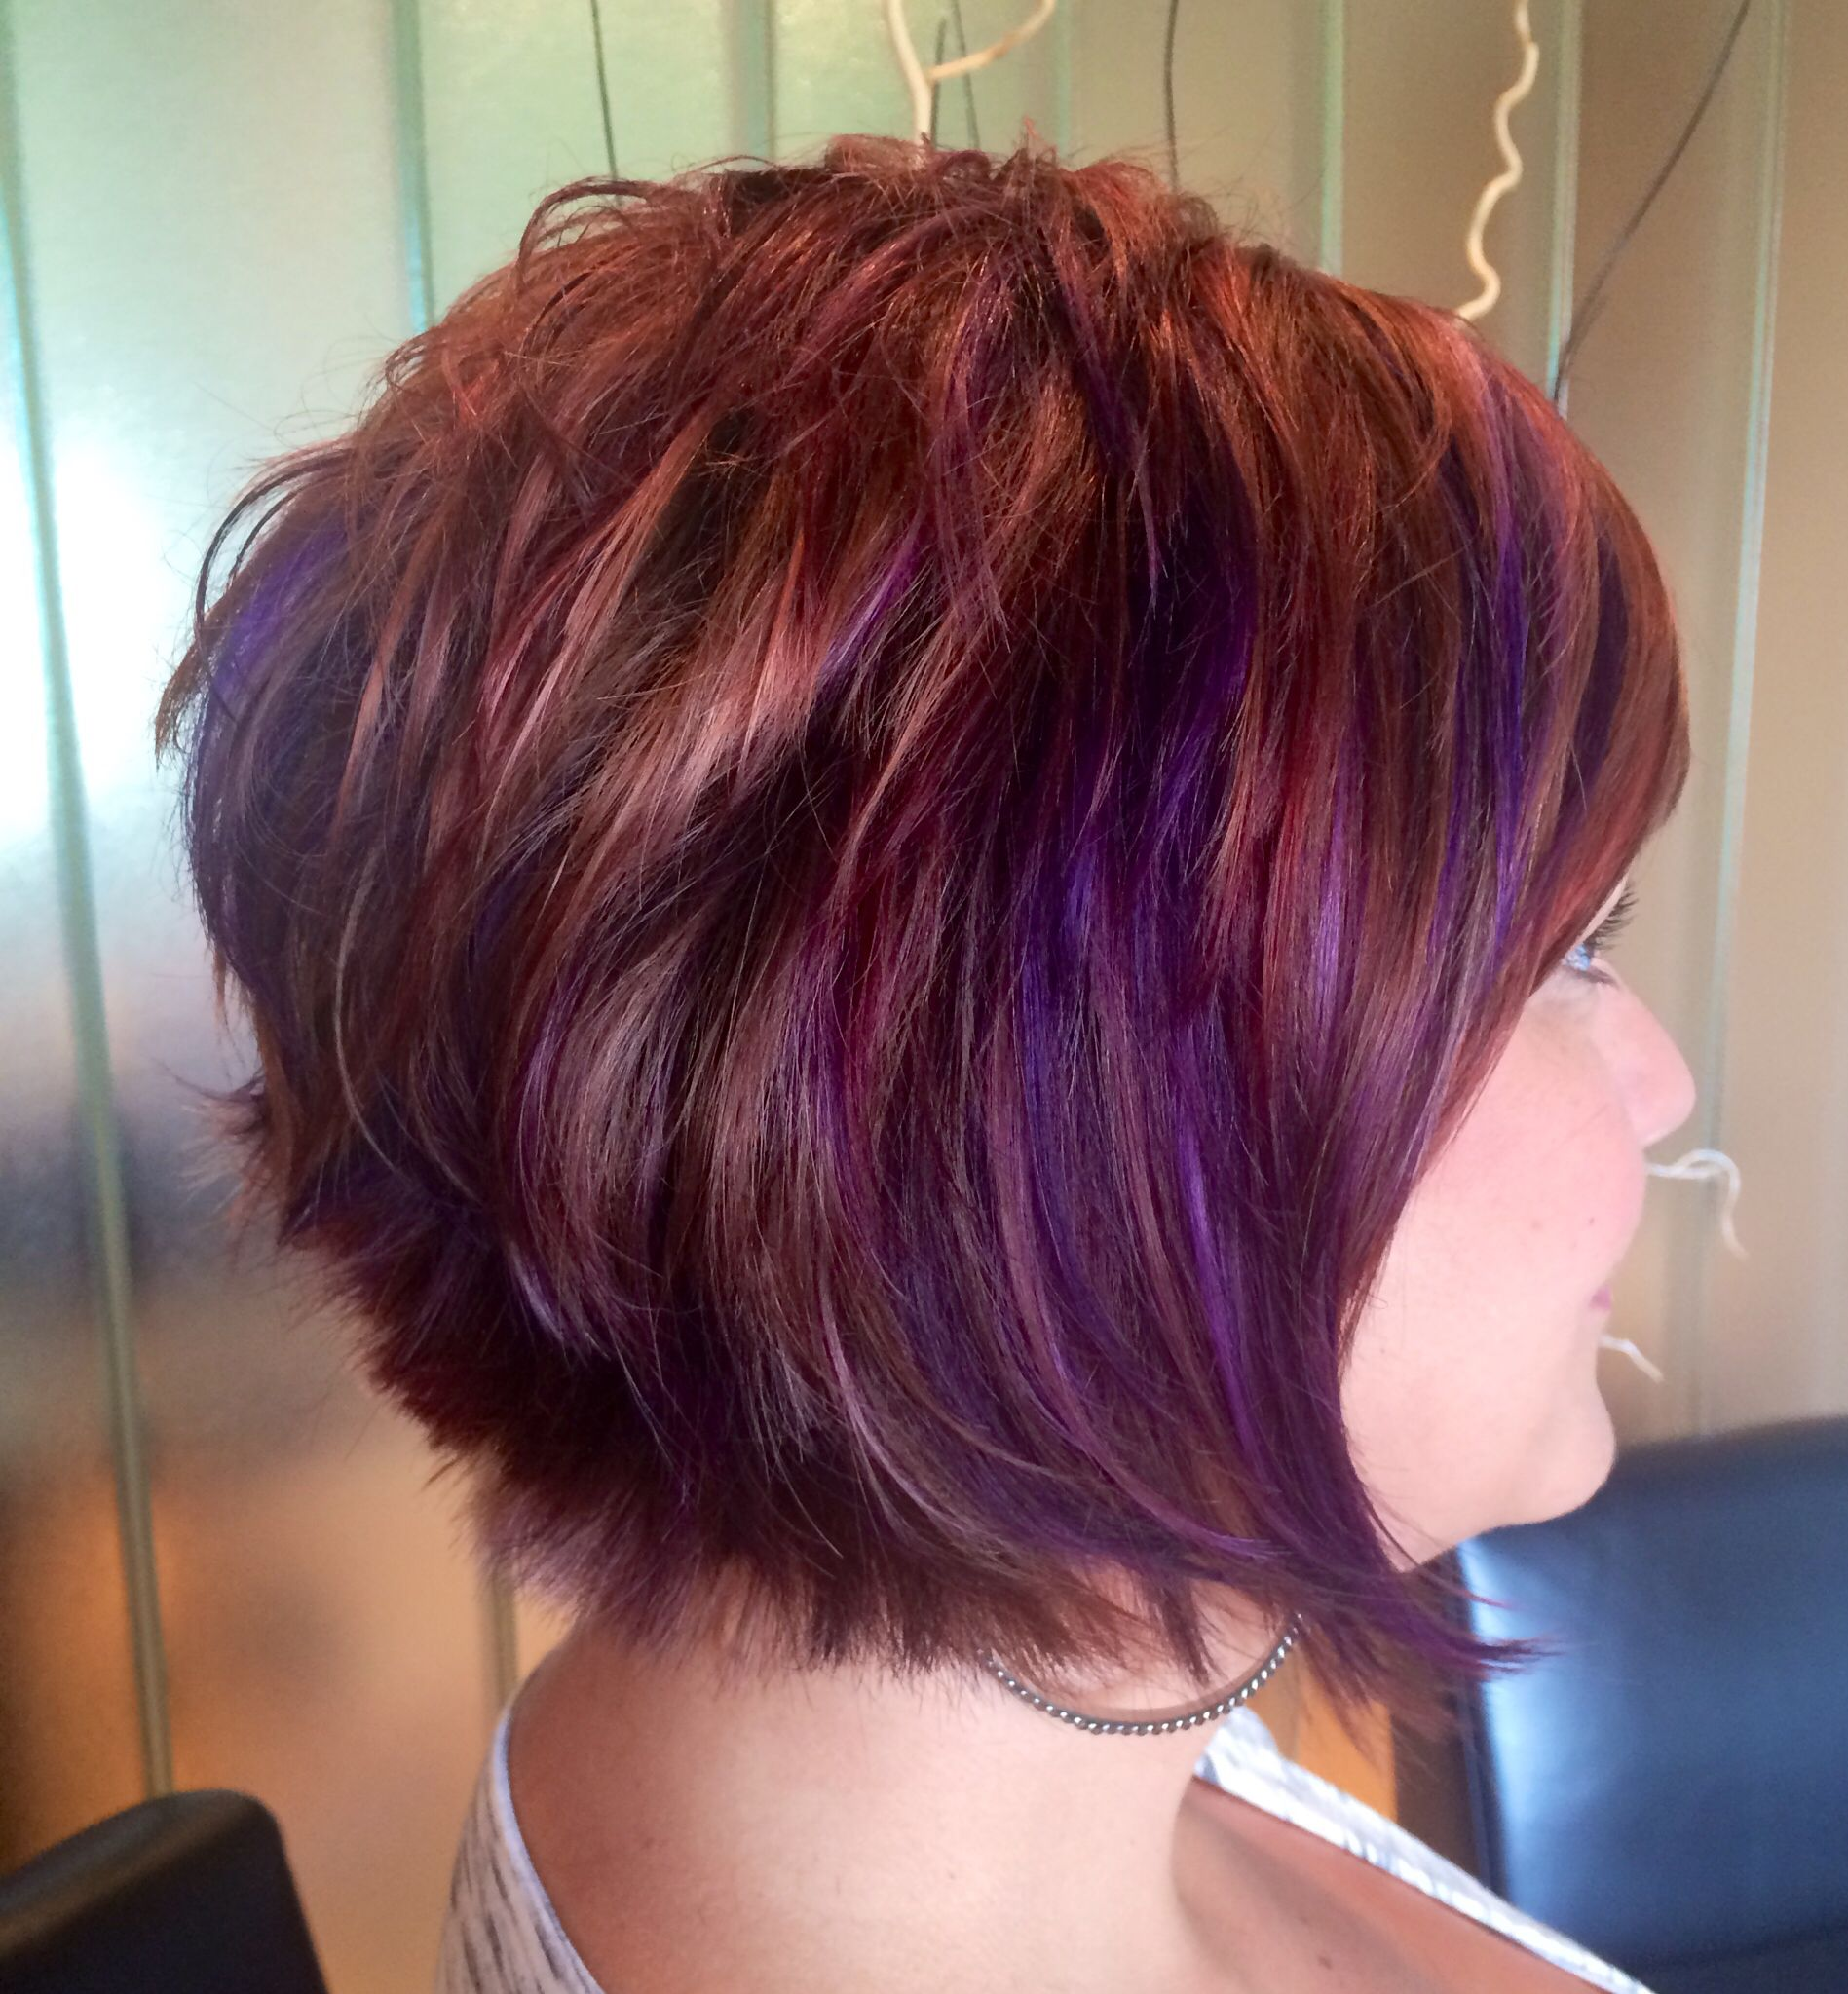 Purplehair copper gold u red hilights with purple panels